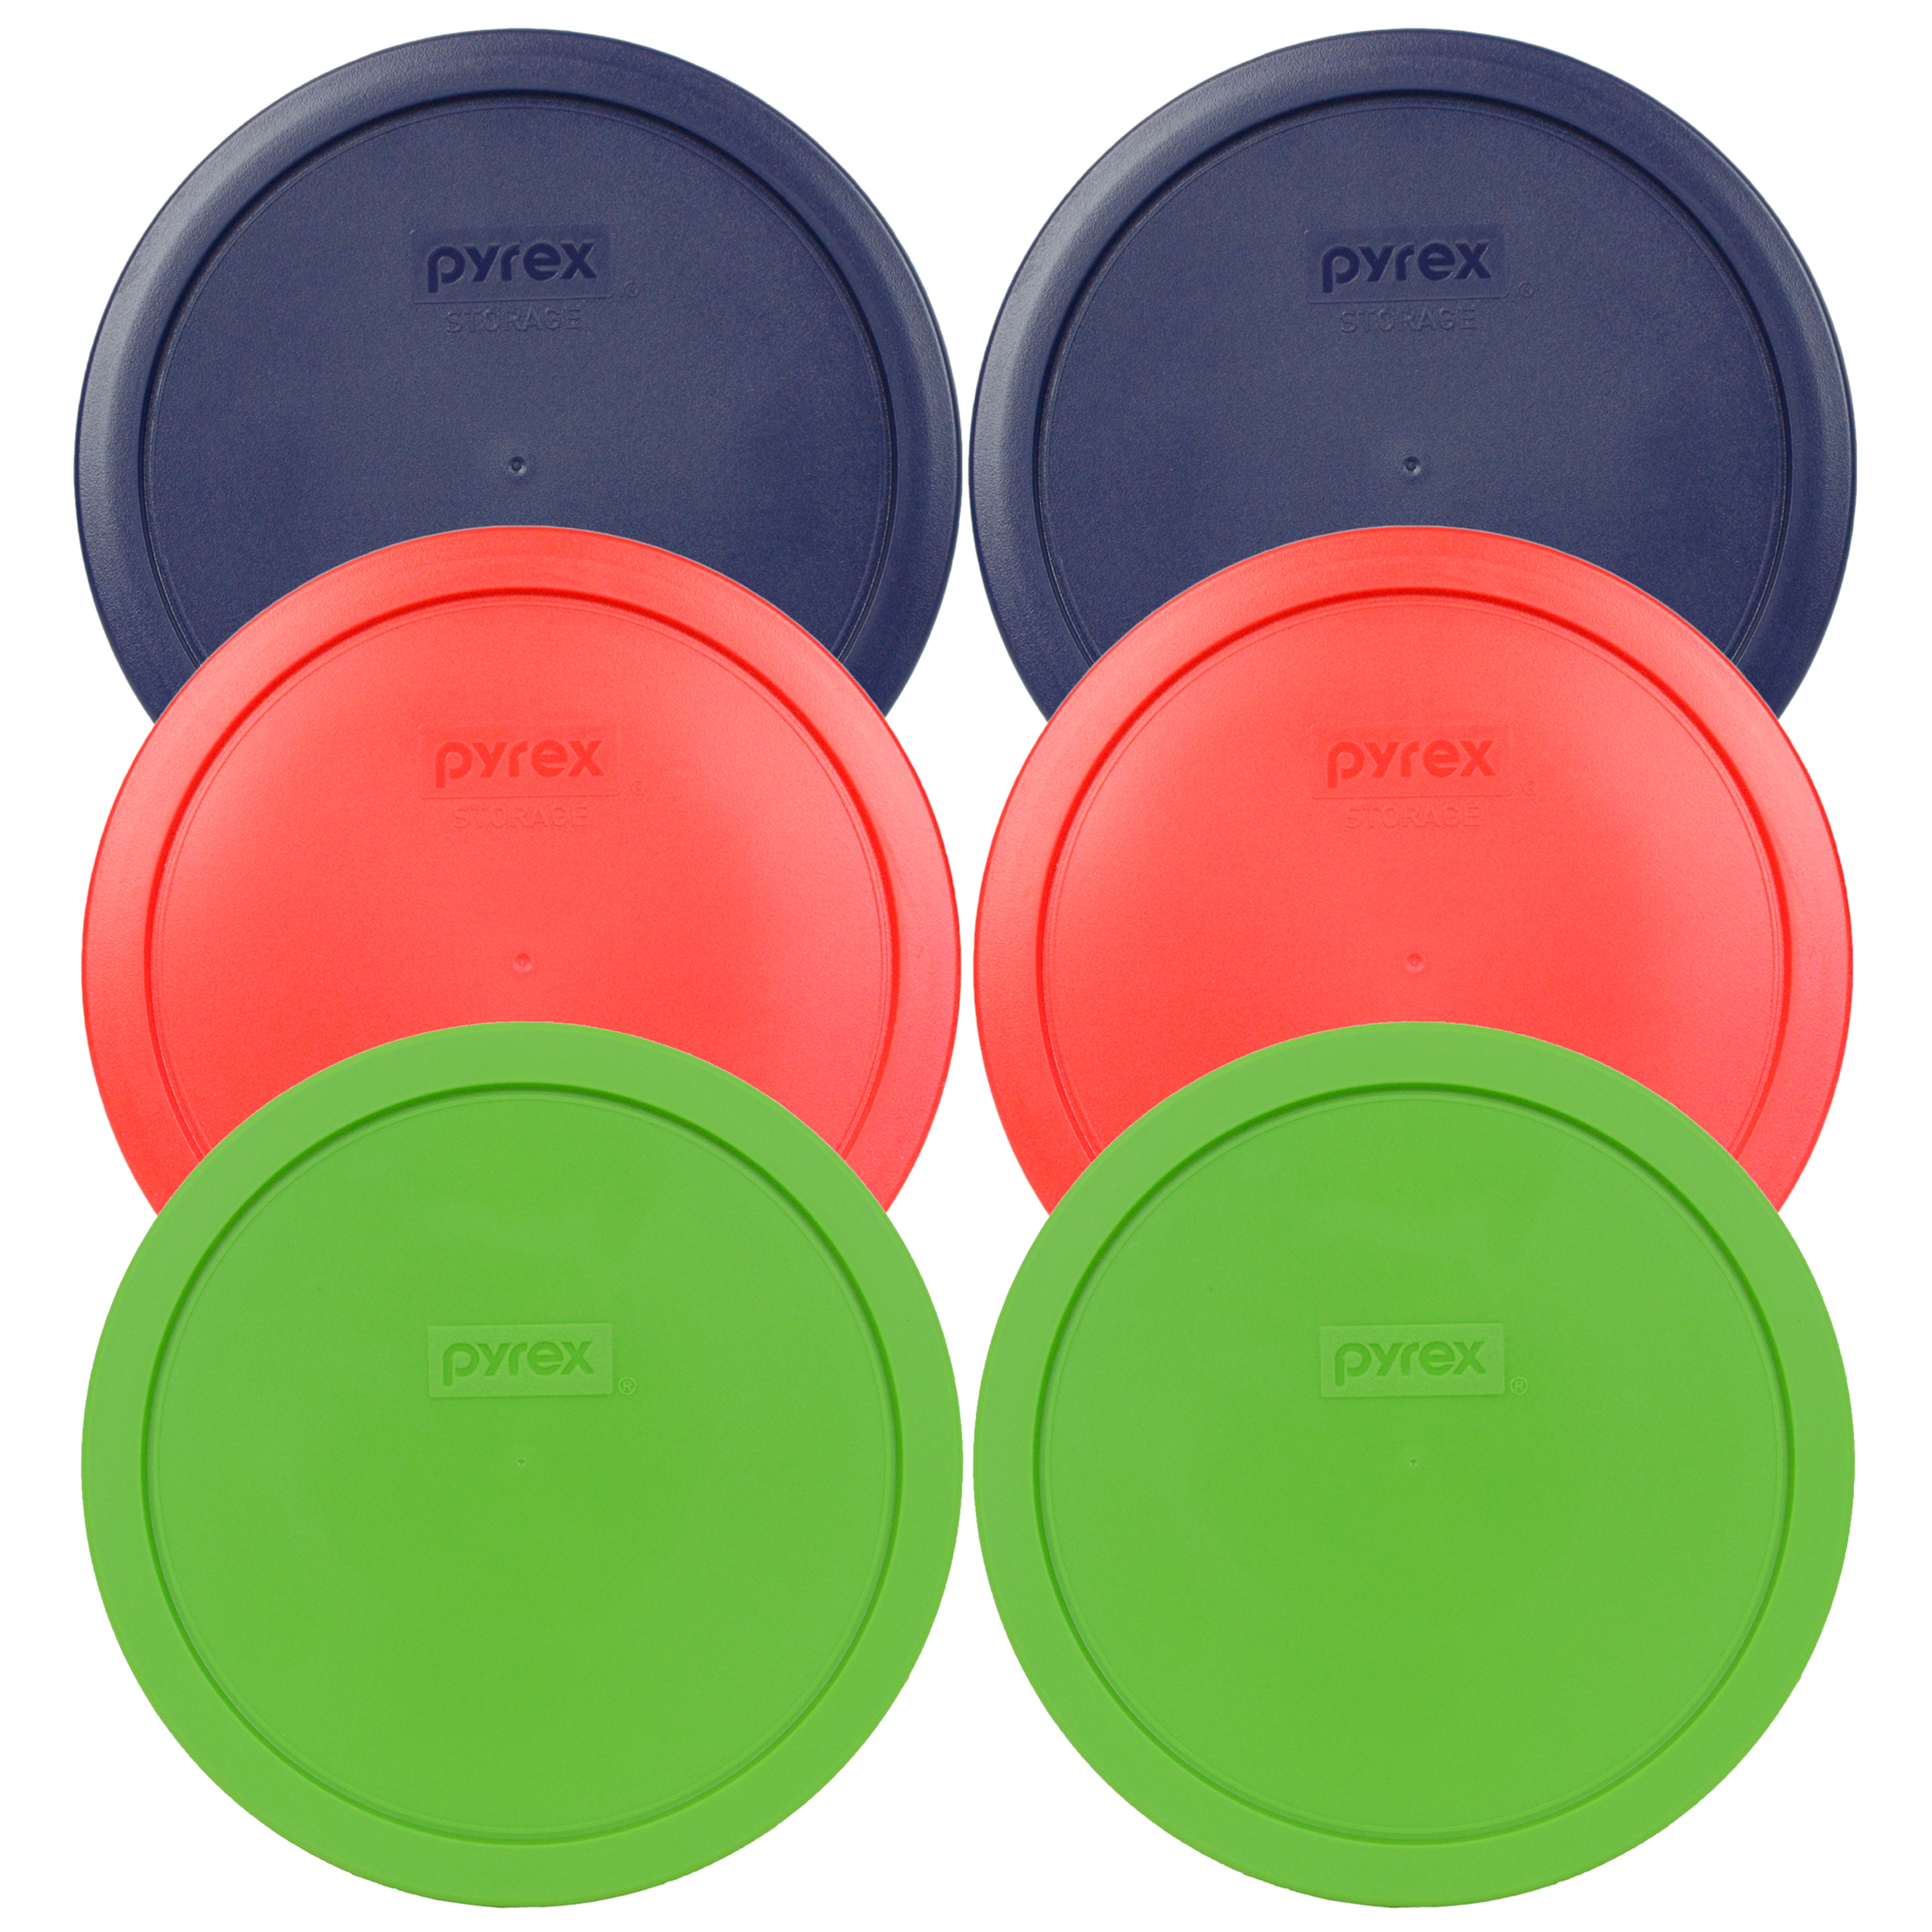 Pyrex Replacement Lid 7402-PC (2) Blue, (2) Red, and (2) Green Round Covers Combo for Pyrex 7402 7-Cup Bowl (Sold Separately)